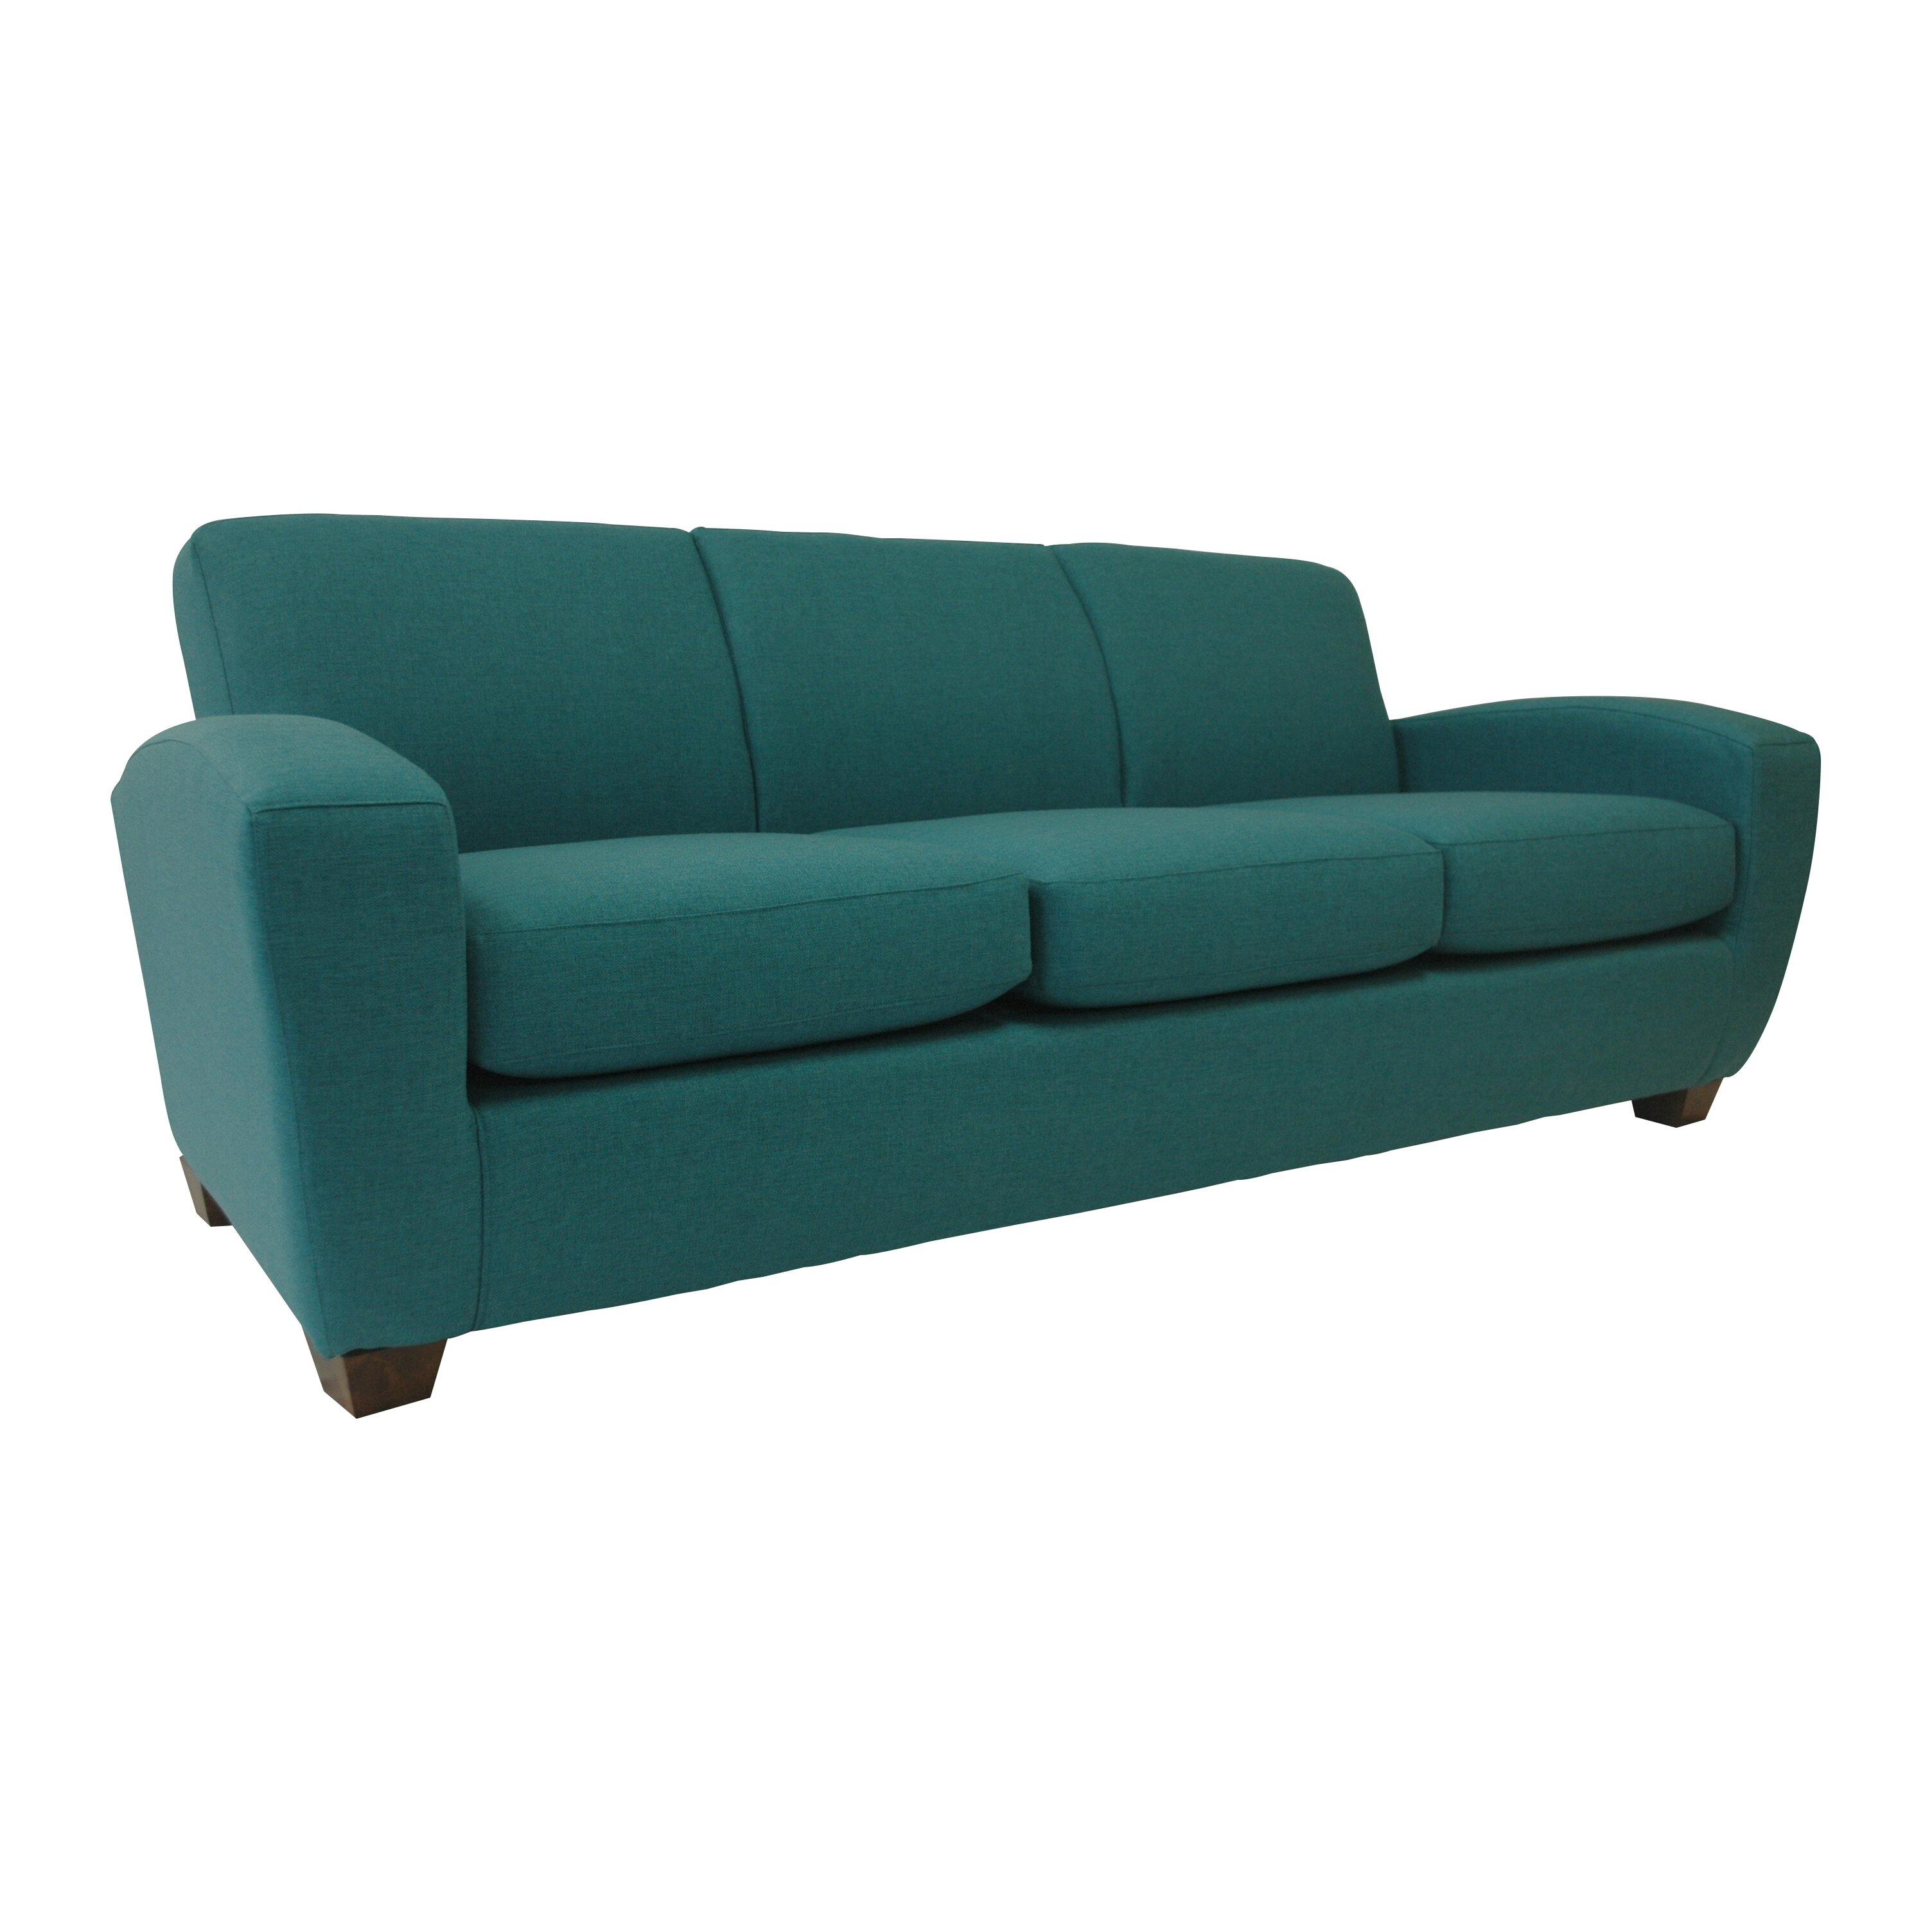 Fox Hill Trading Scandic Ultra Lightweight Sofa Allmodern